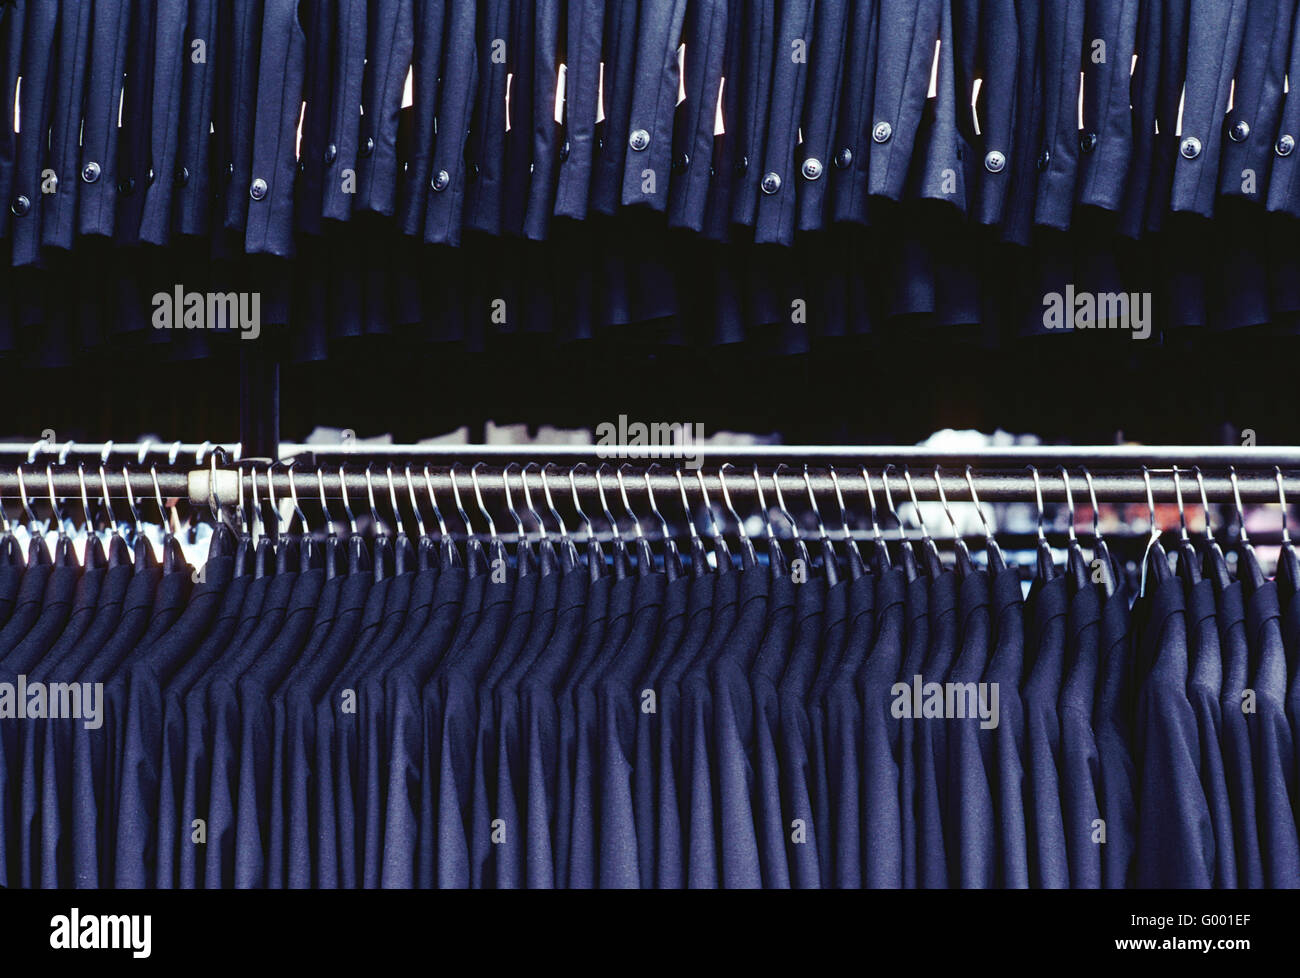 Rows of new tuxedos on a rack in a garment manufacturing facility - Stock Image